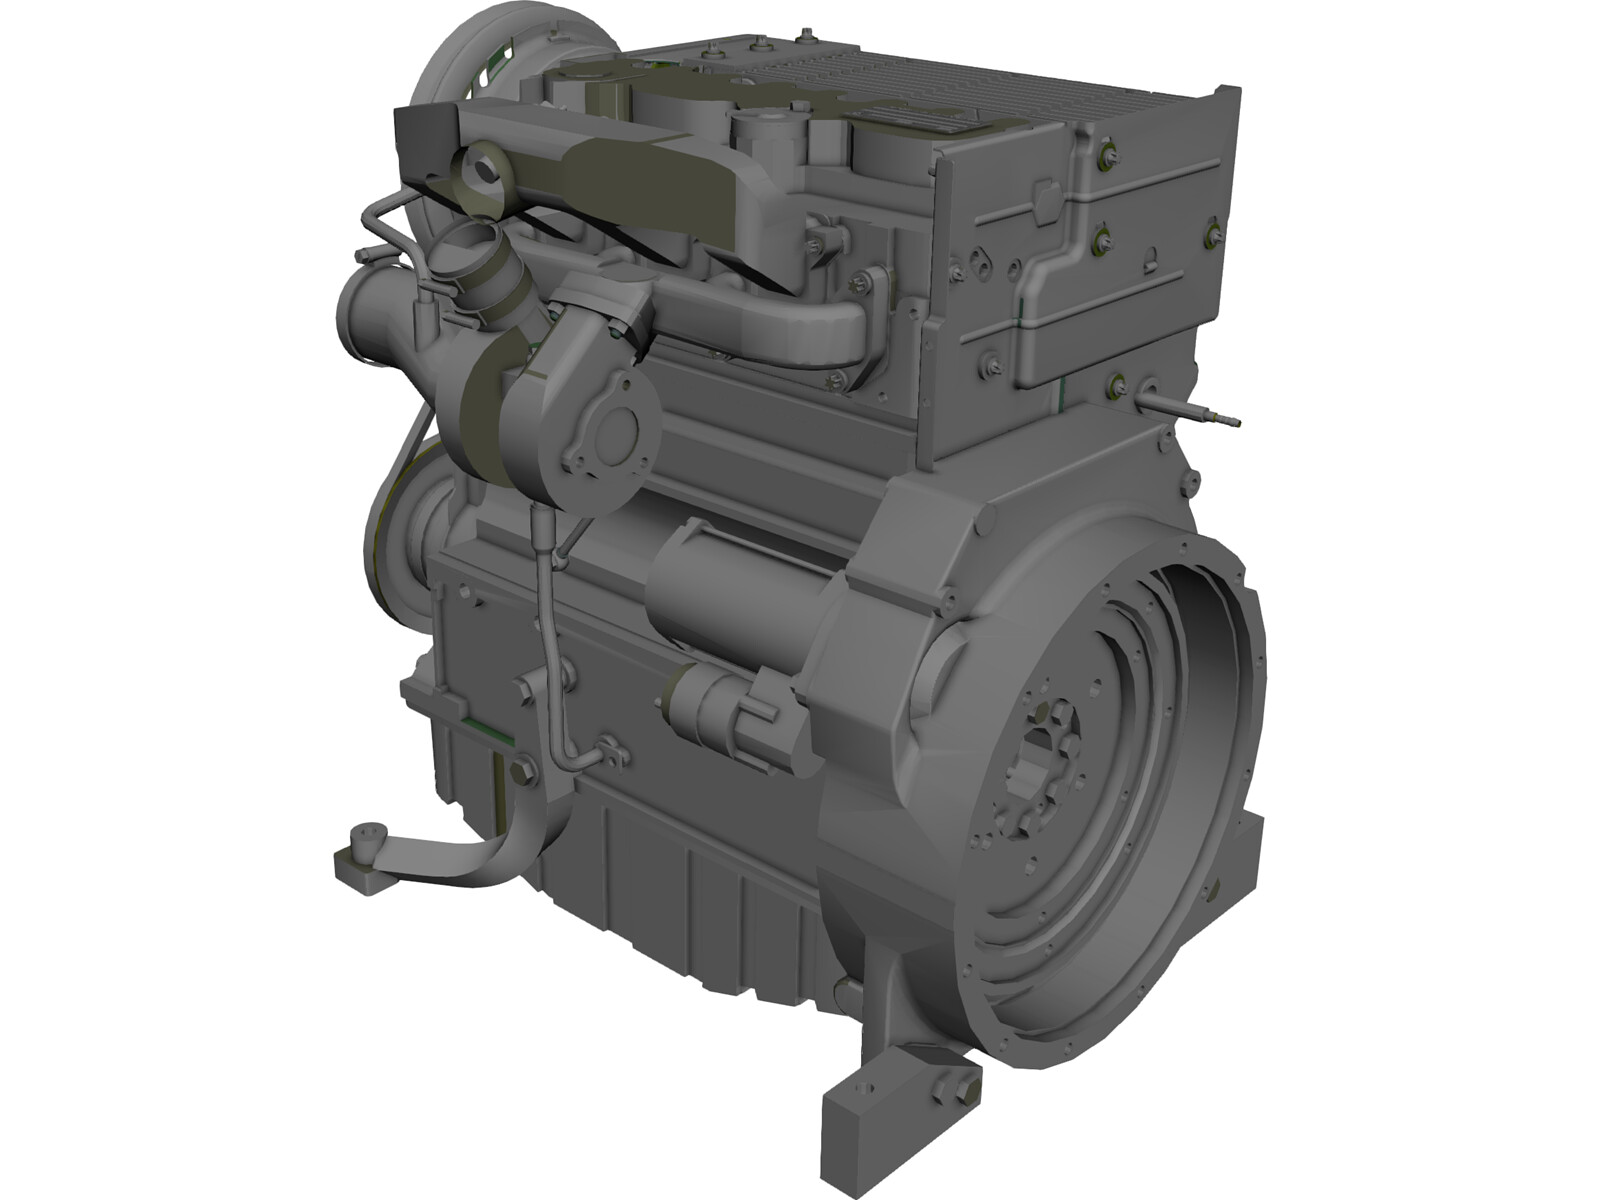 Engine deutz turbo diesel 2011 3d cad model 3d cad browser Cad models